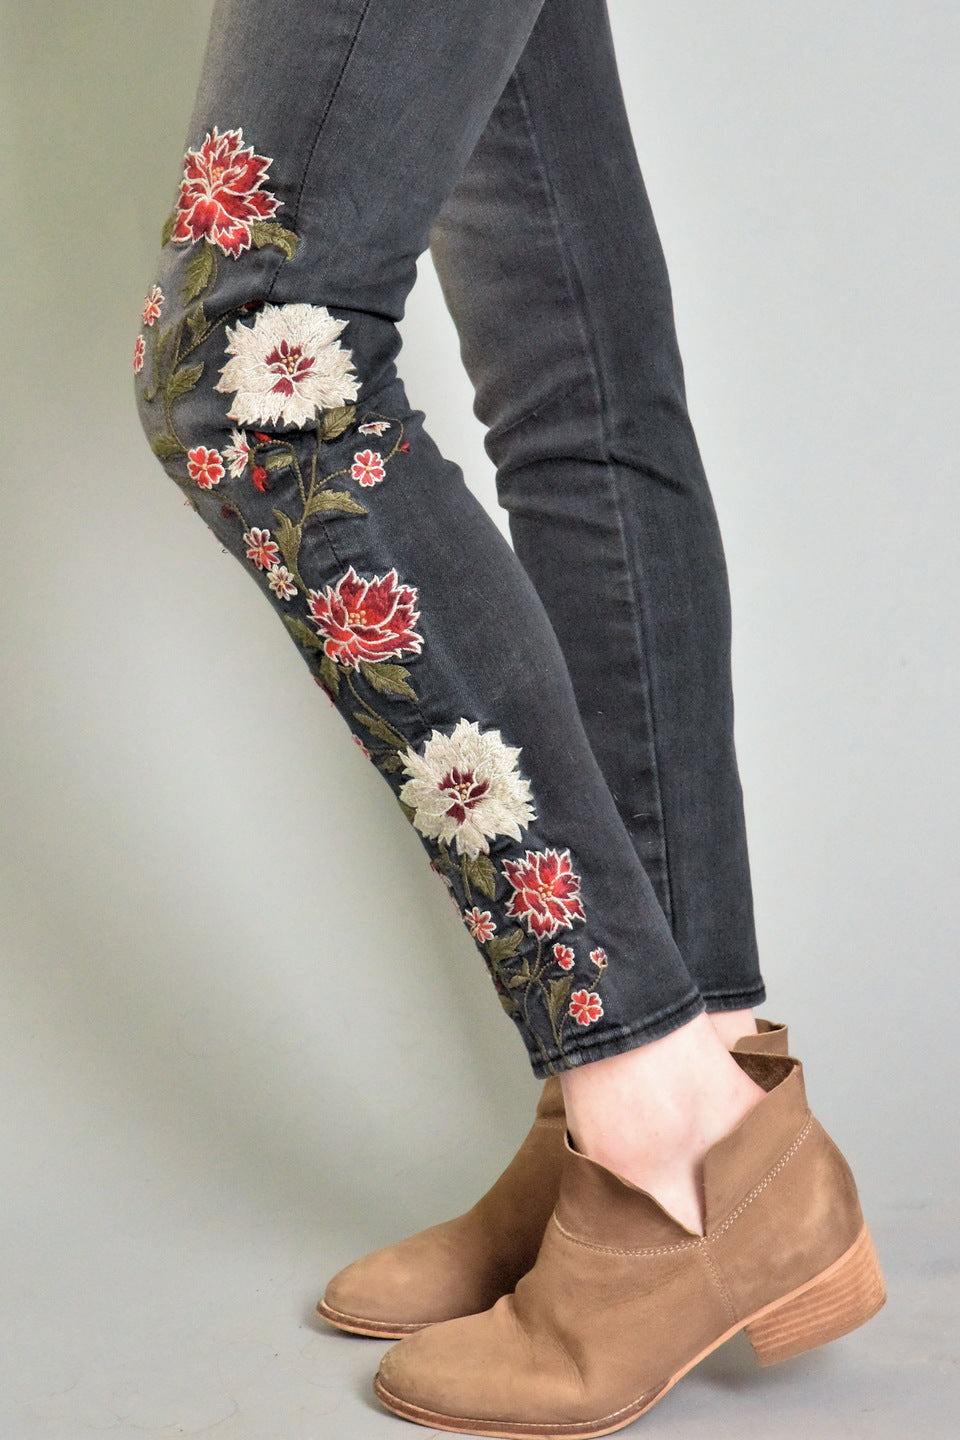 "Jackie floral embroidered skinny jeans in black wash ""Oakland' by Driftwood"